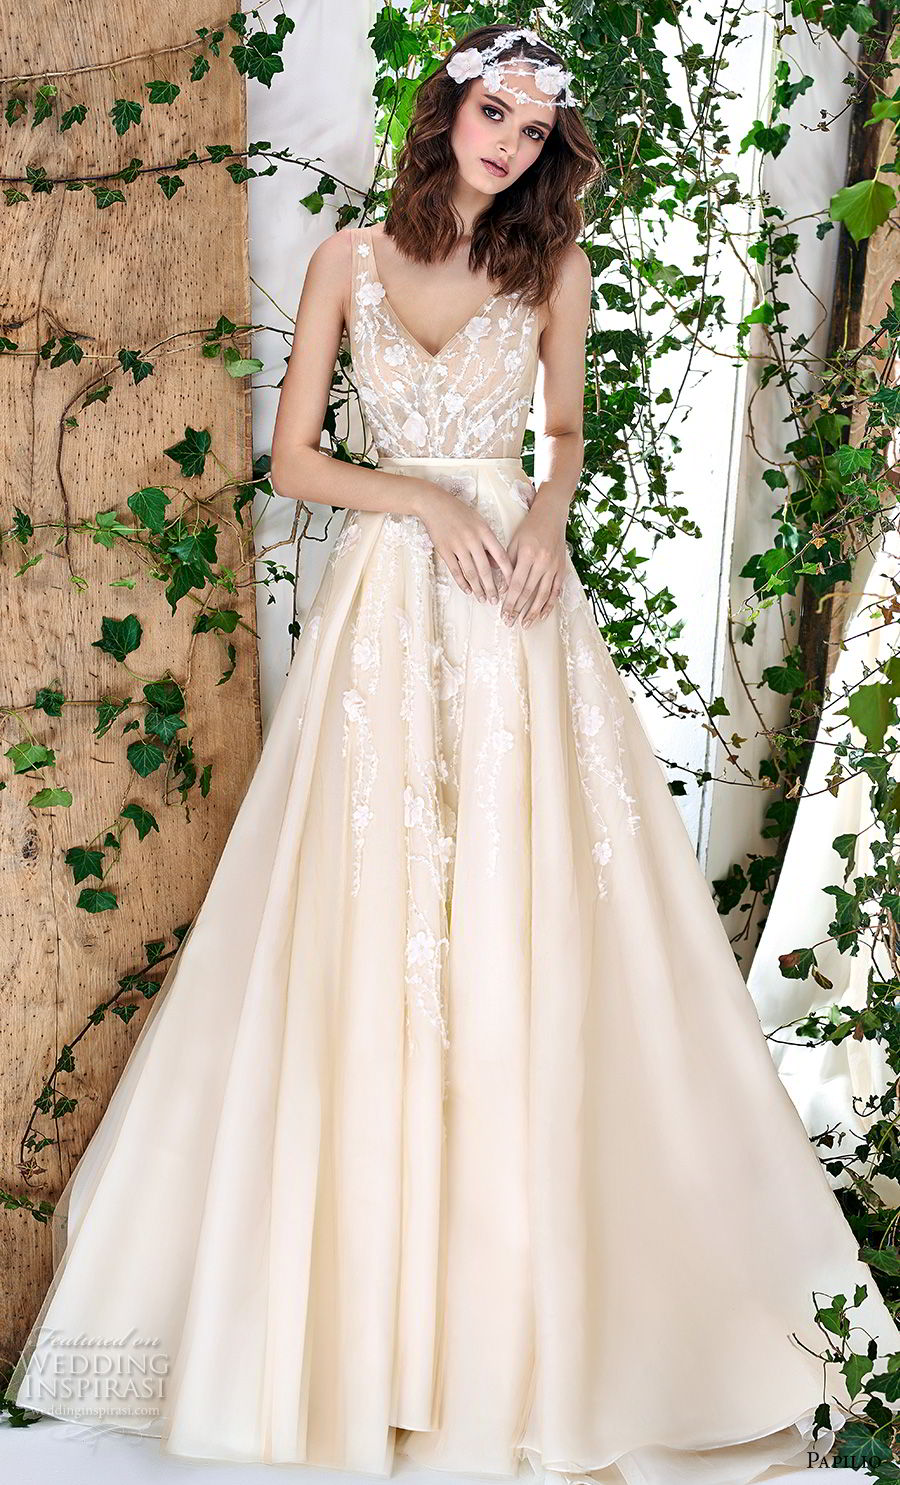 papilio 2018 bridal sleeveless v neck heavily embellished bodice romantic ivory a  line wedding dress with pockets scoop back chapel train (15) mv